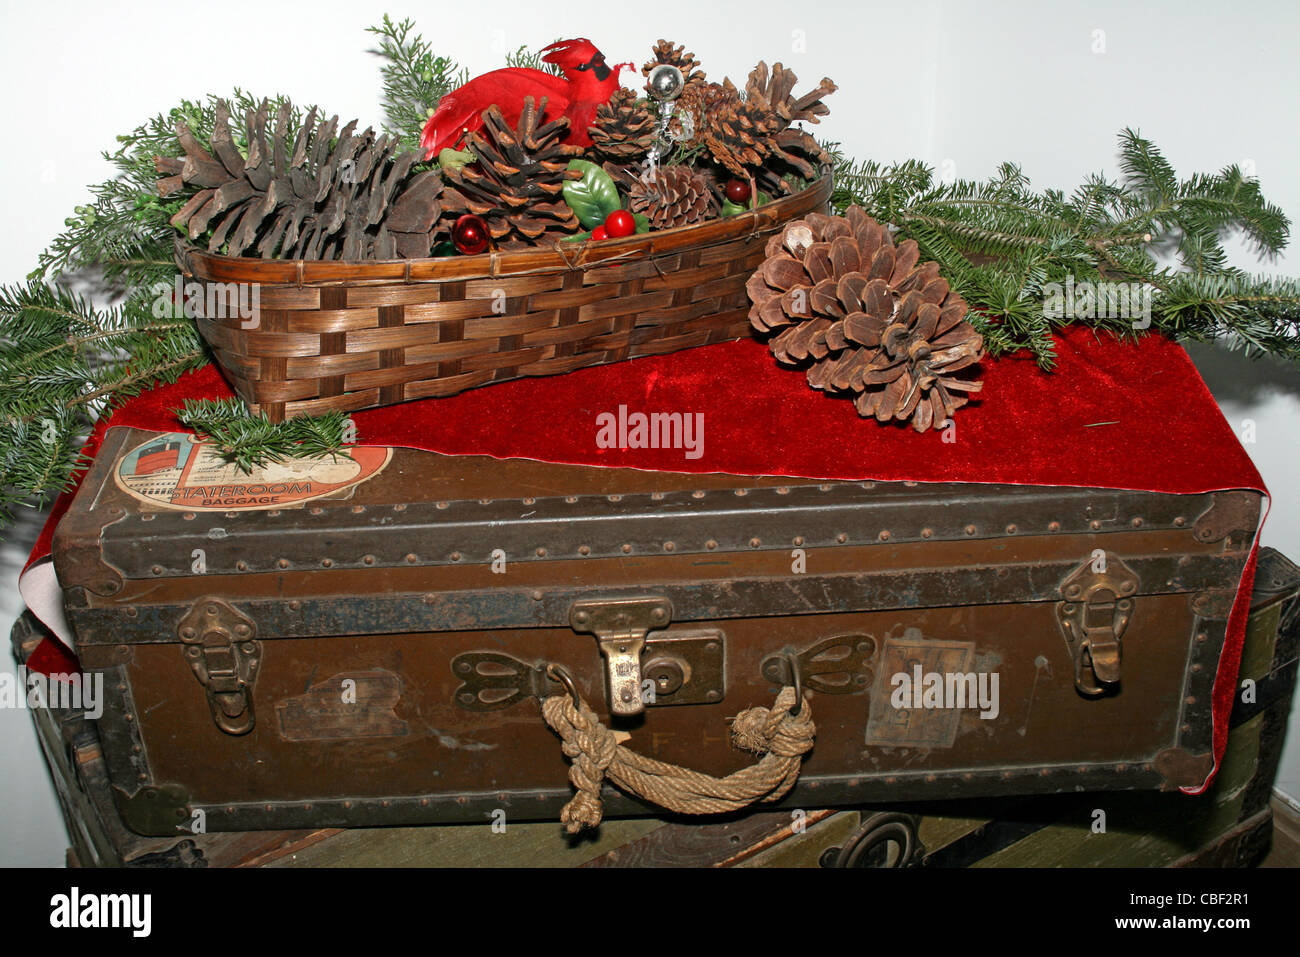 Old suitcase with Christmas decorations - Stock Image